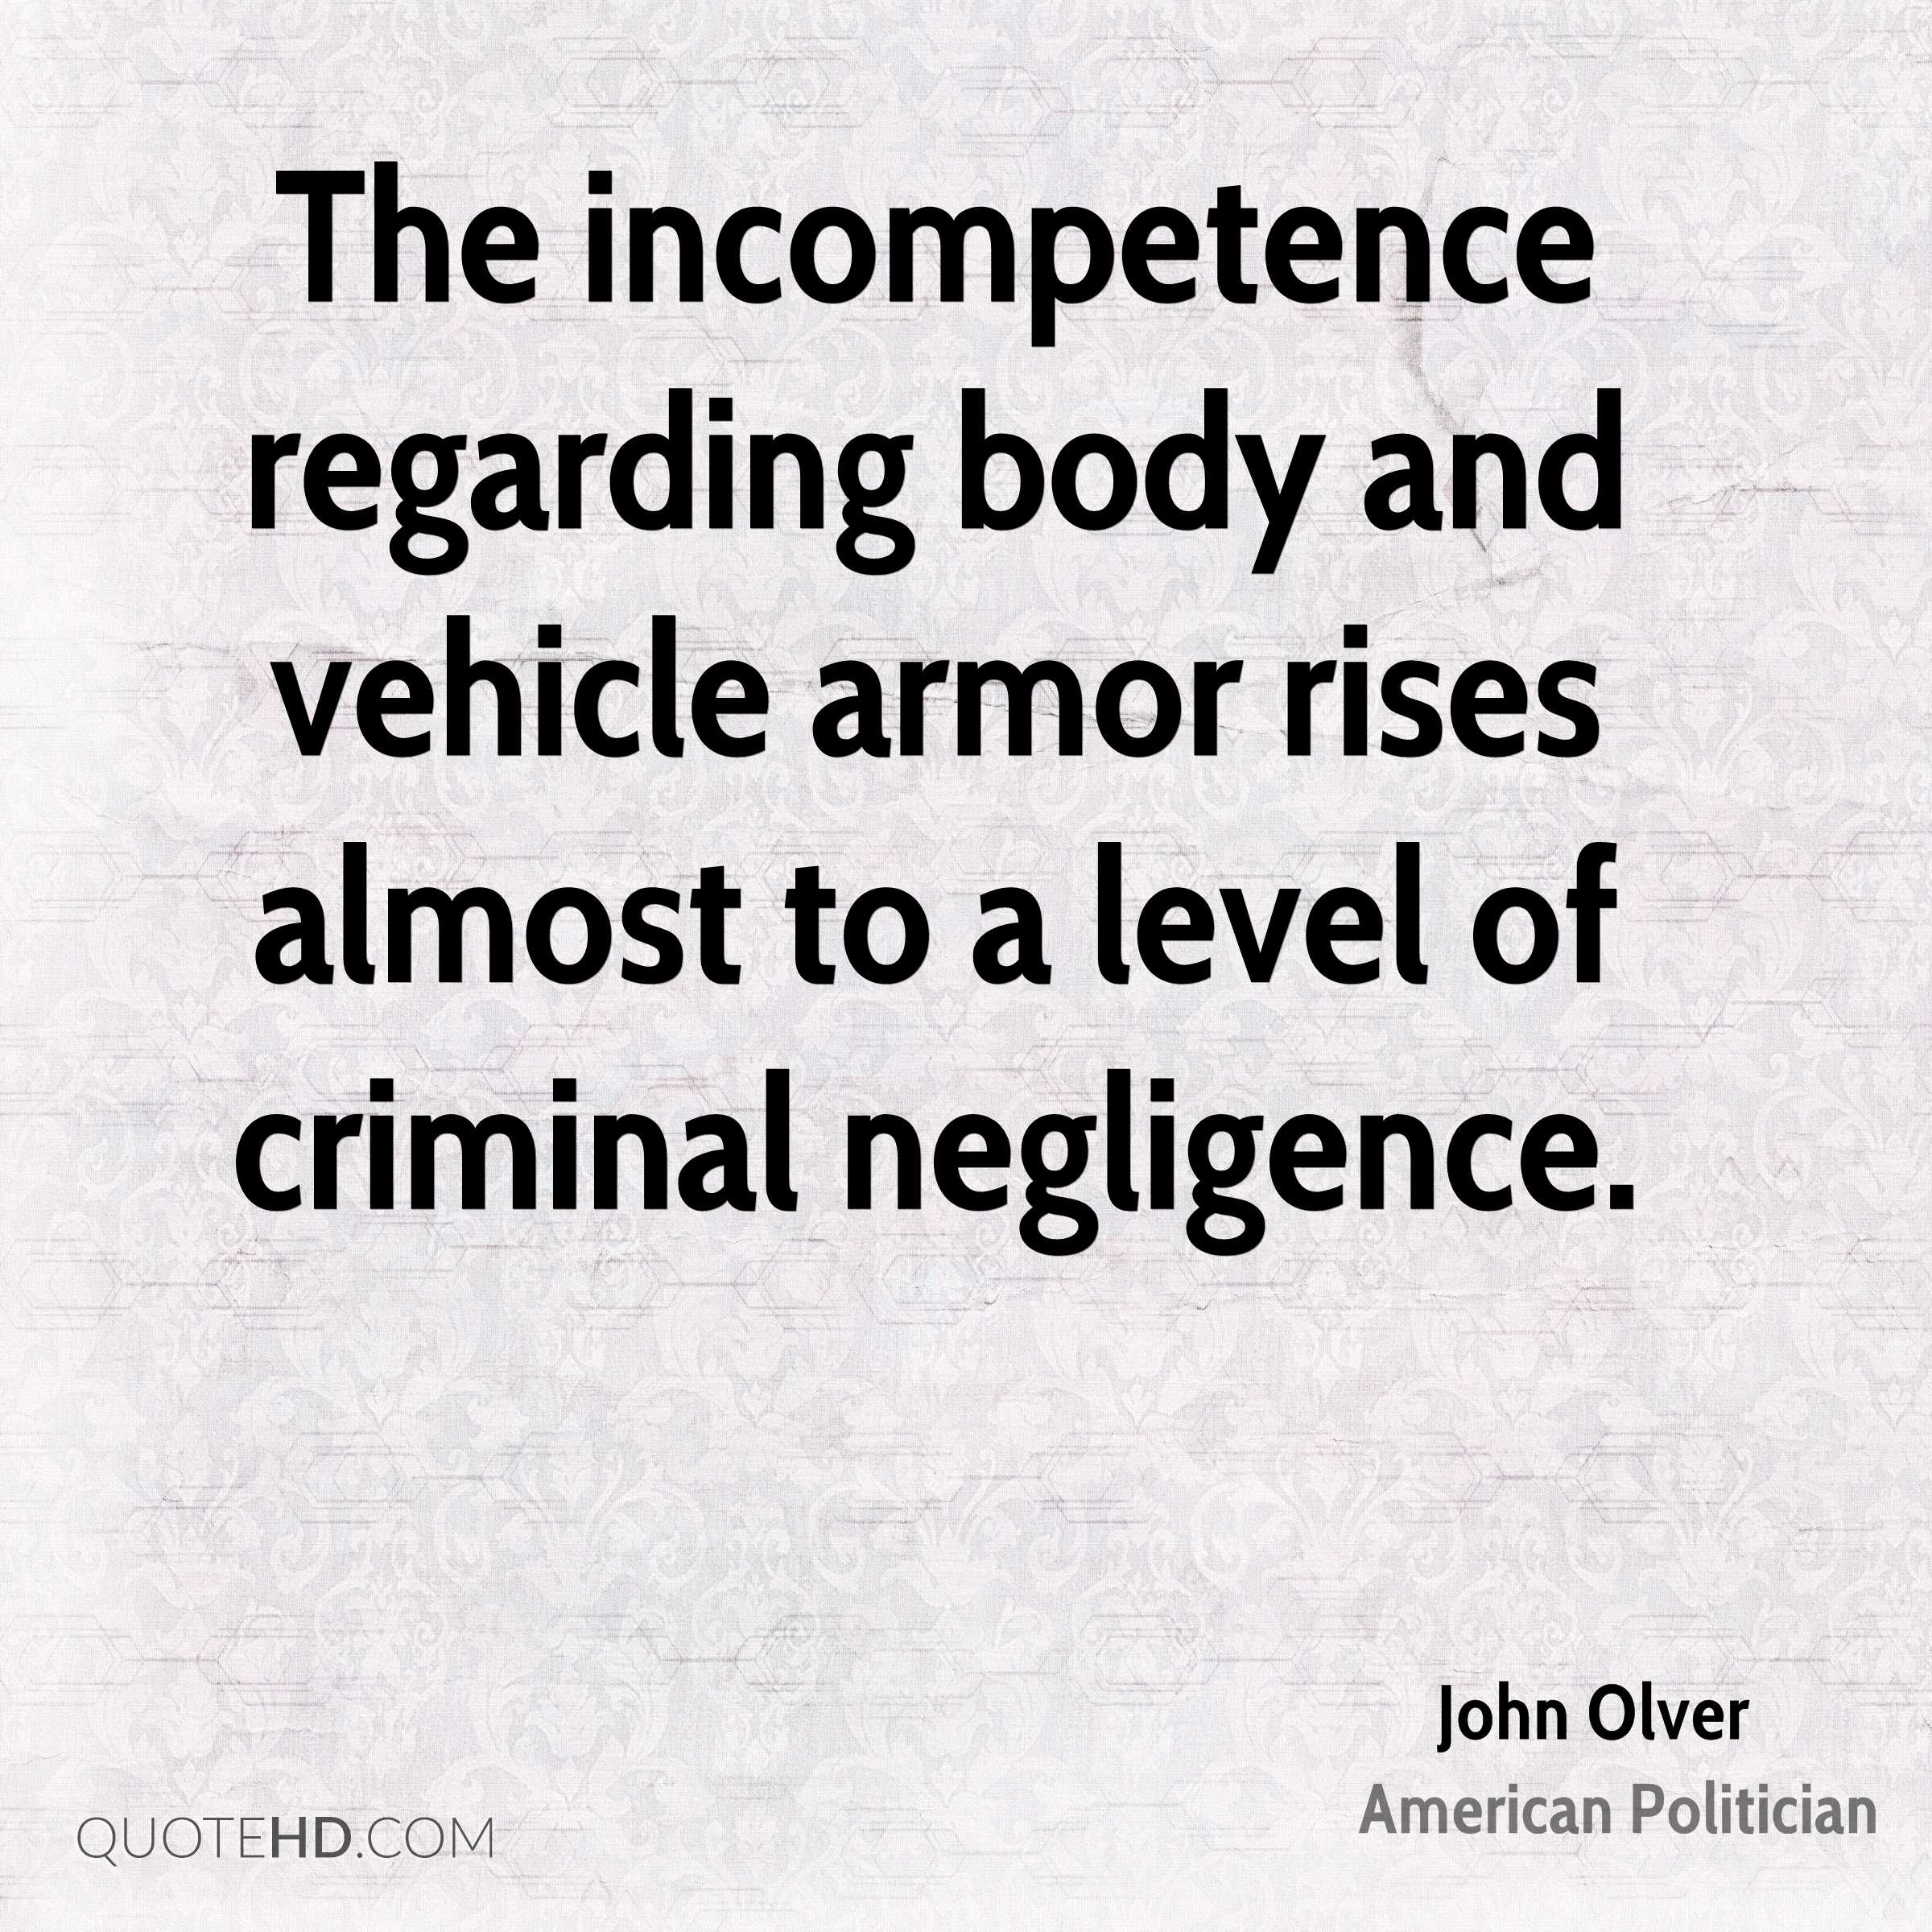 The incompetence regarding body and vehicle armor rises almost to a level of criminal negligence.